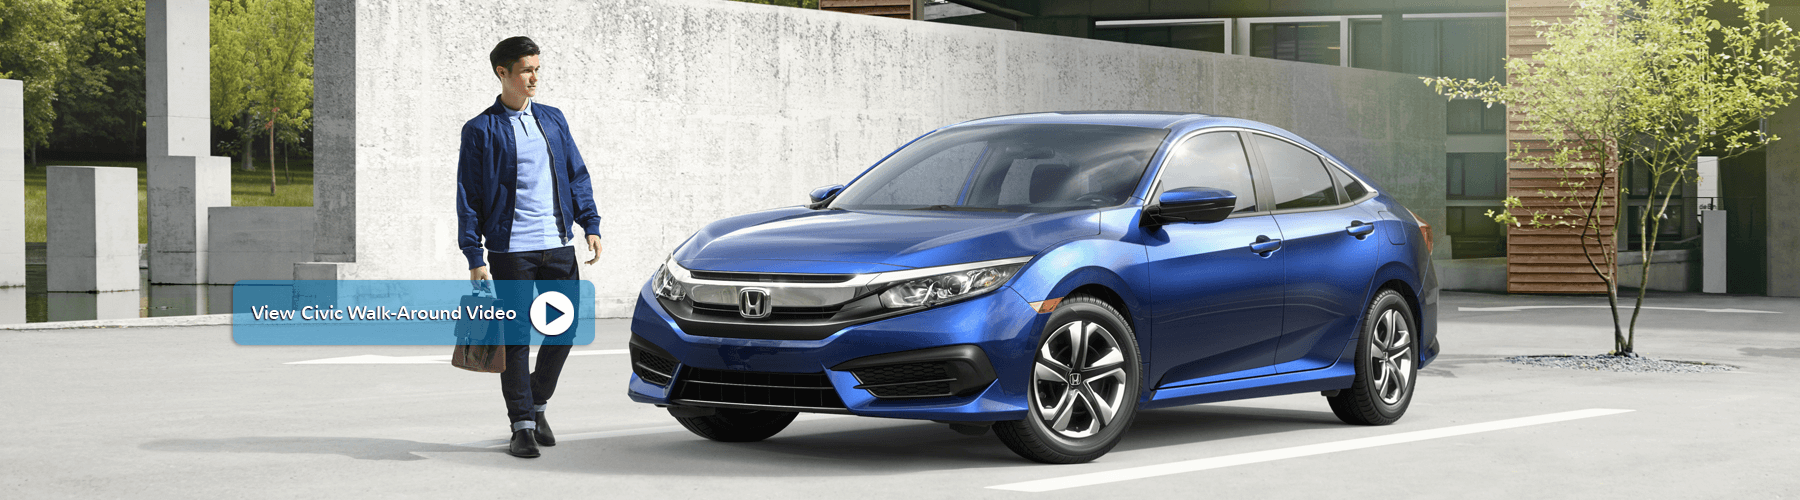 2018 Honda Civic Sedan Banner